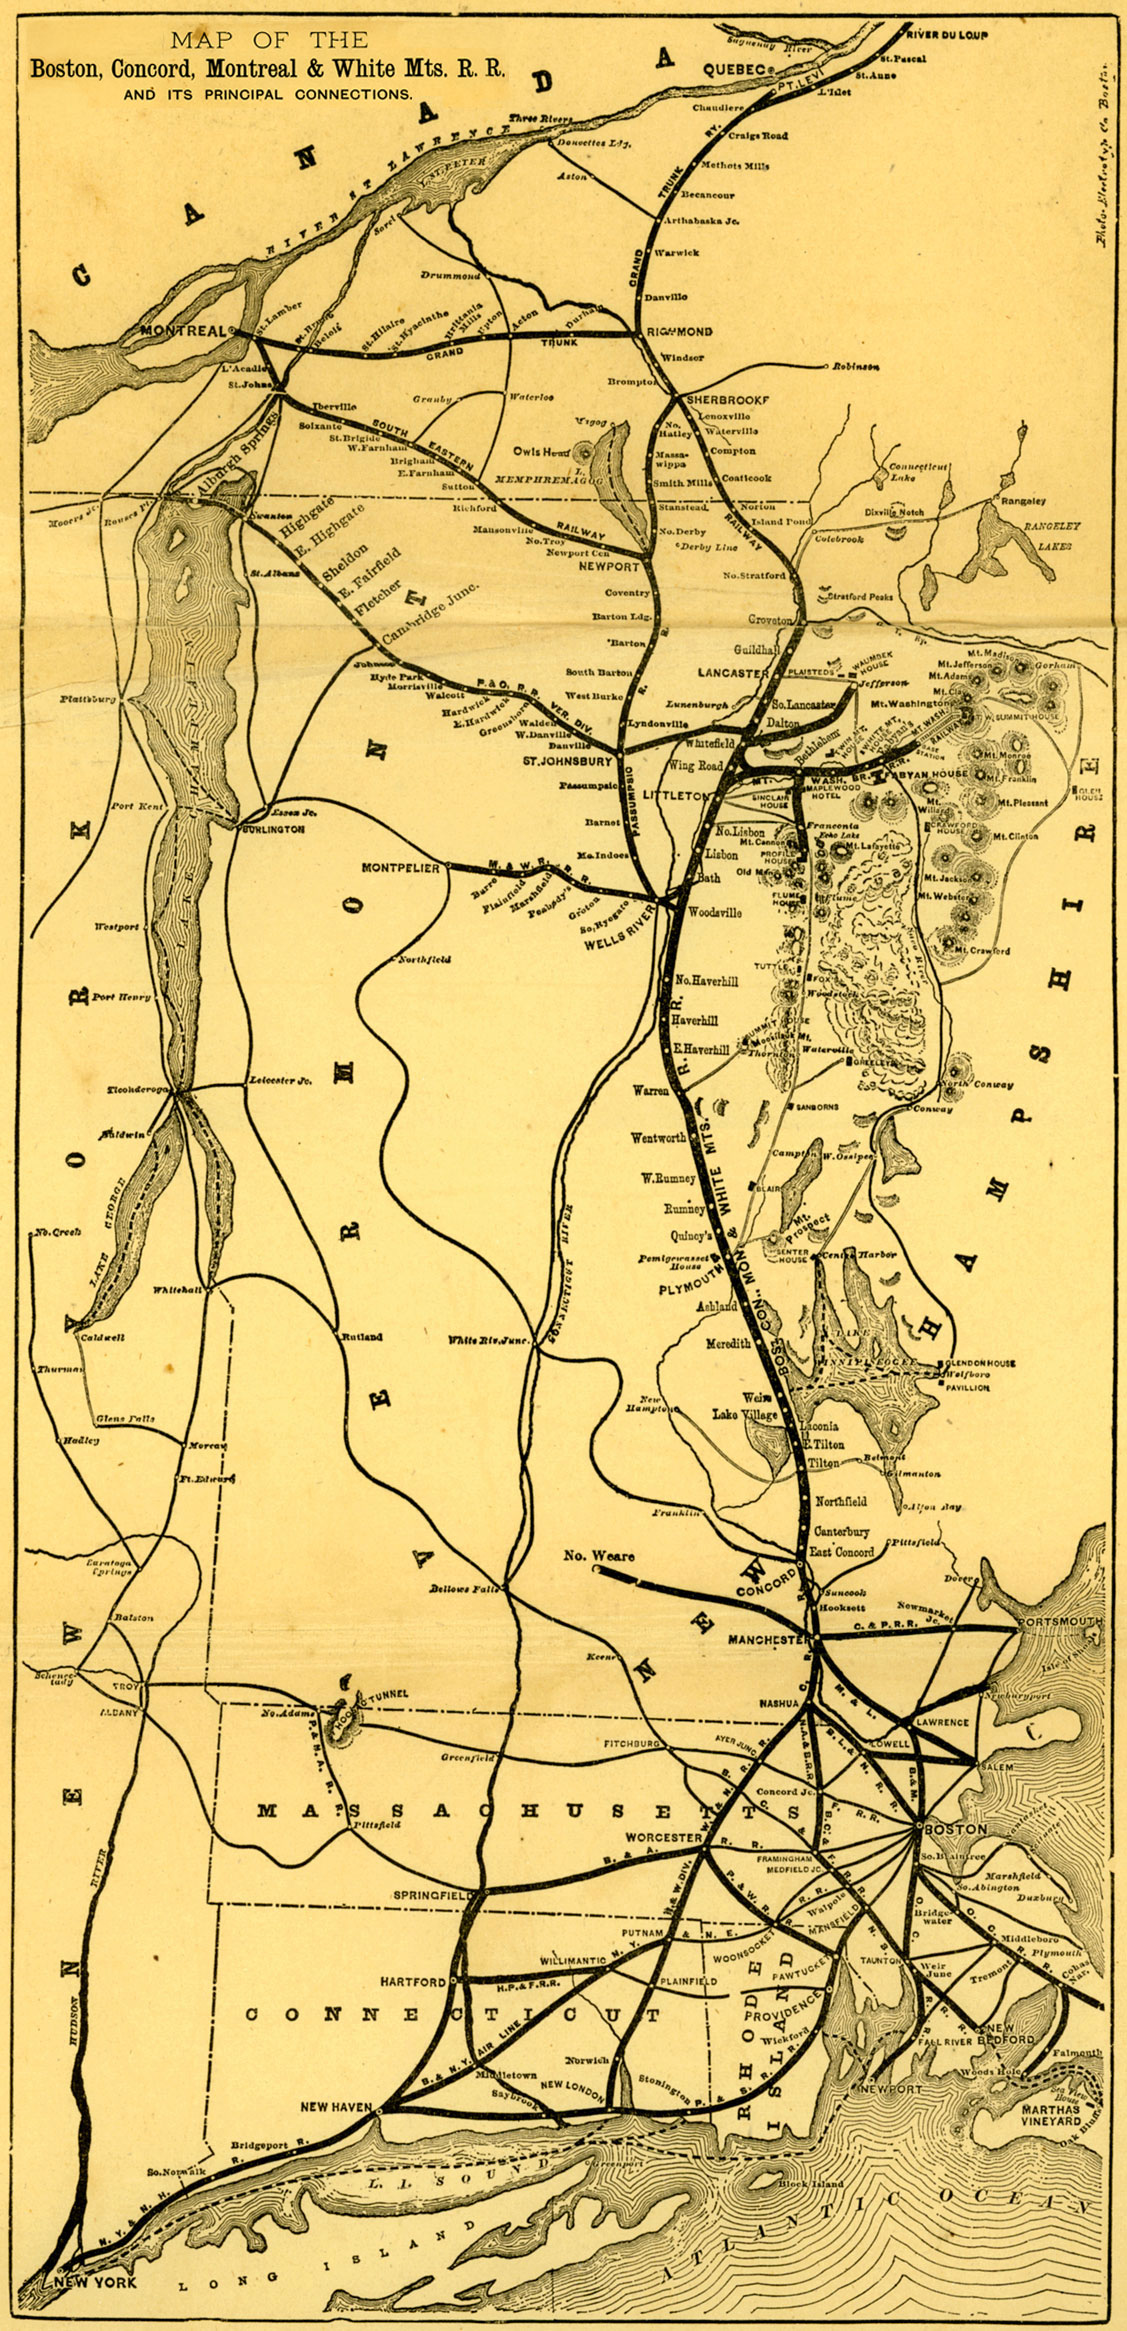 comparing an earlier 1878 system map shown below to the 1880 1882 map above one notices several differences in new hampshire